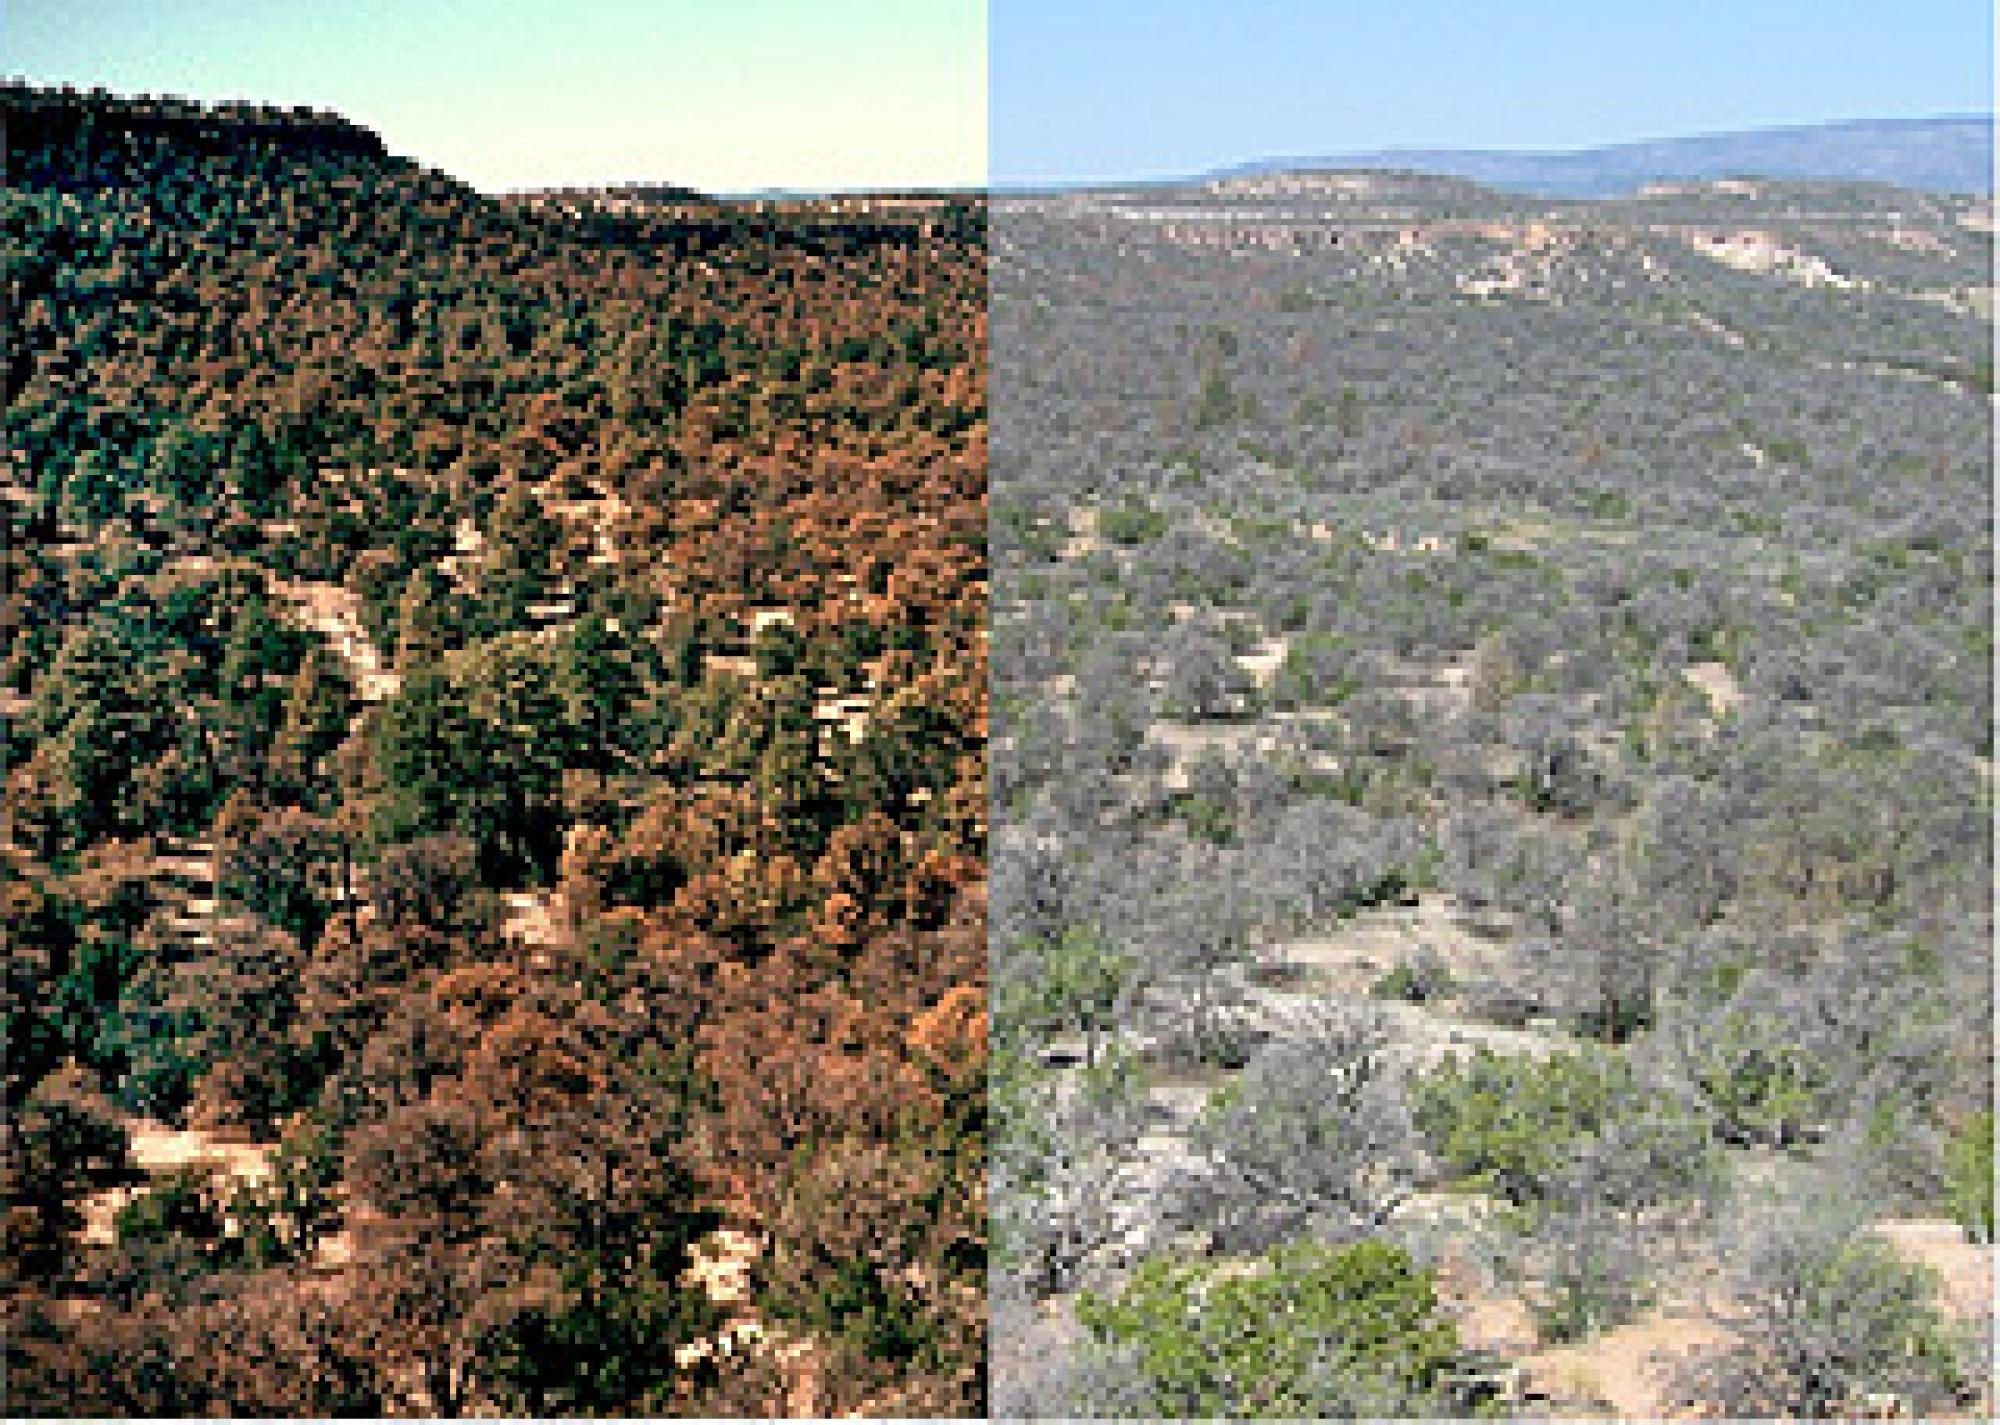 These photos show the massive die-off of pinyon pines that occurred during the recent drought. Pinyons, normally evergreen, have reddish-brown foliage in October 2002 . By May 2004, the dead pinyons have lost all their needles, exposing gray trunks. The p